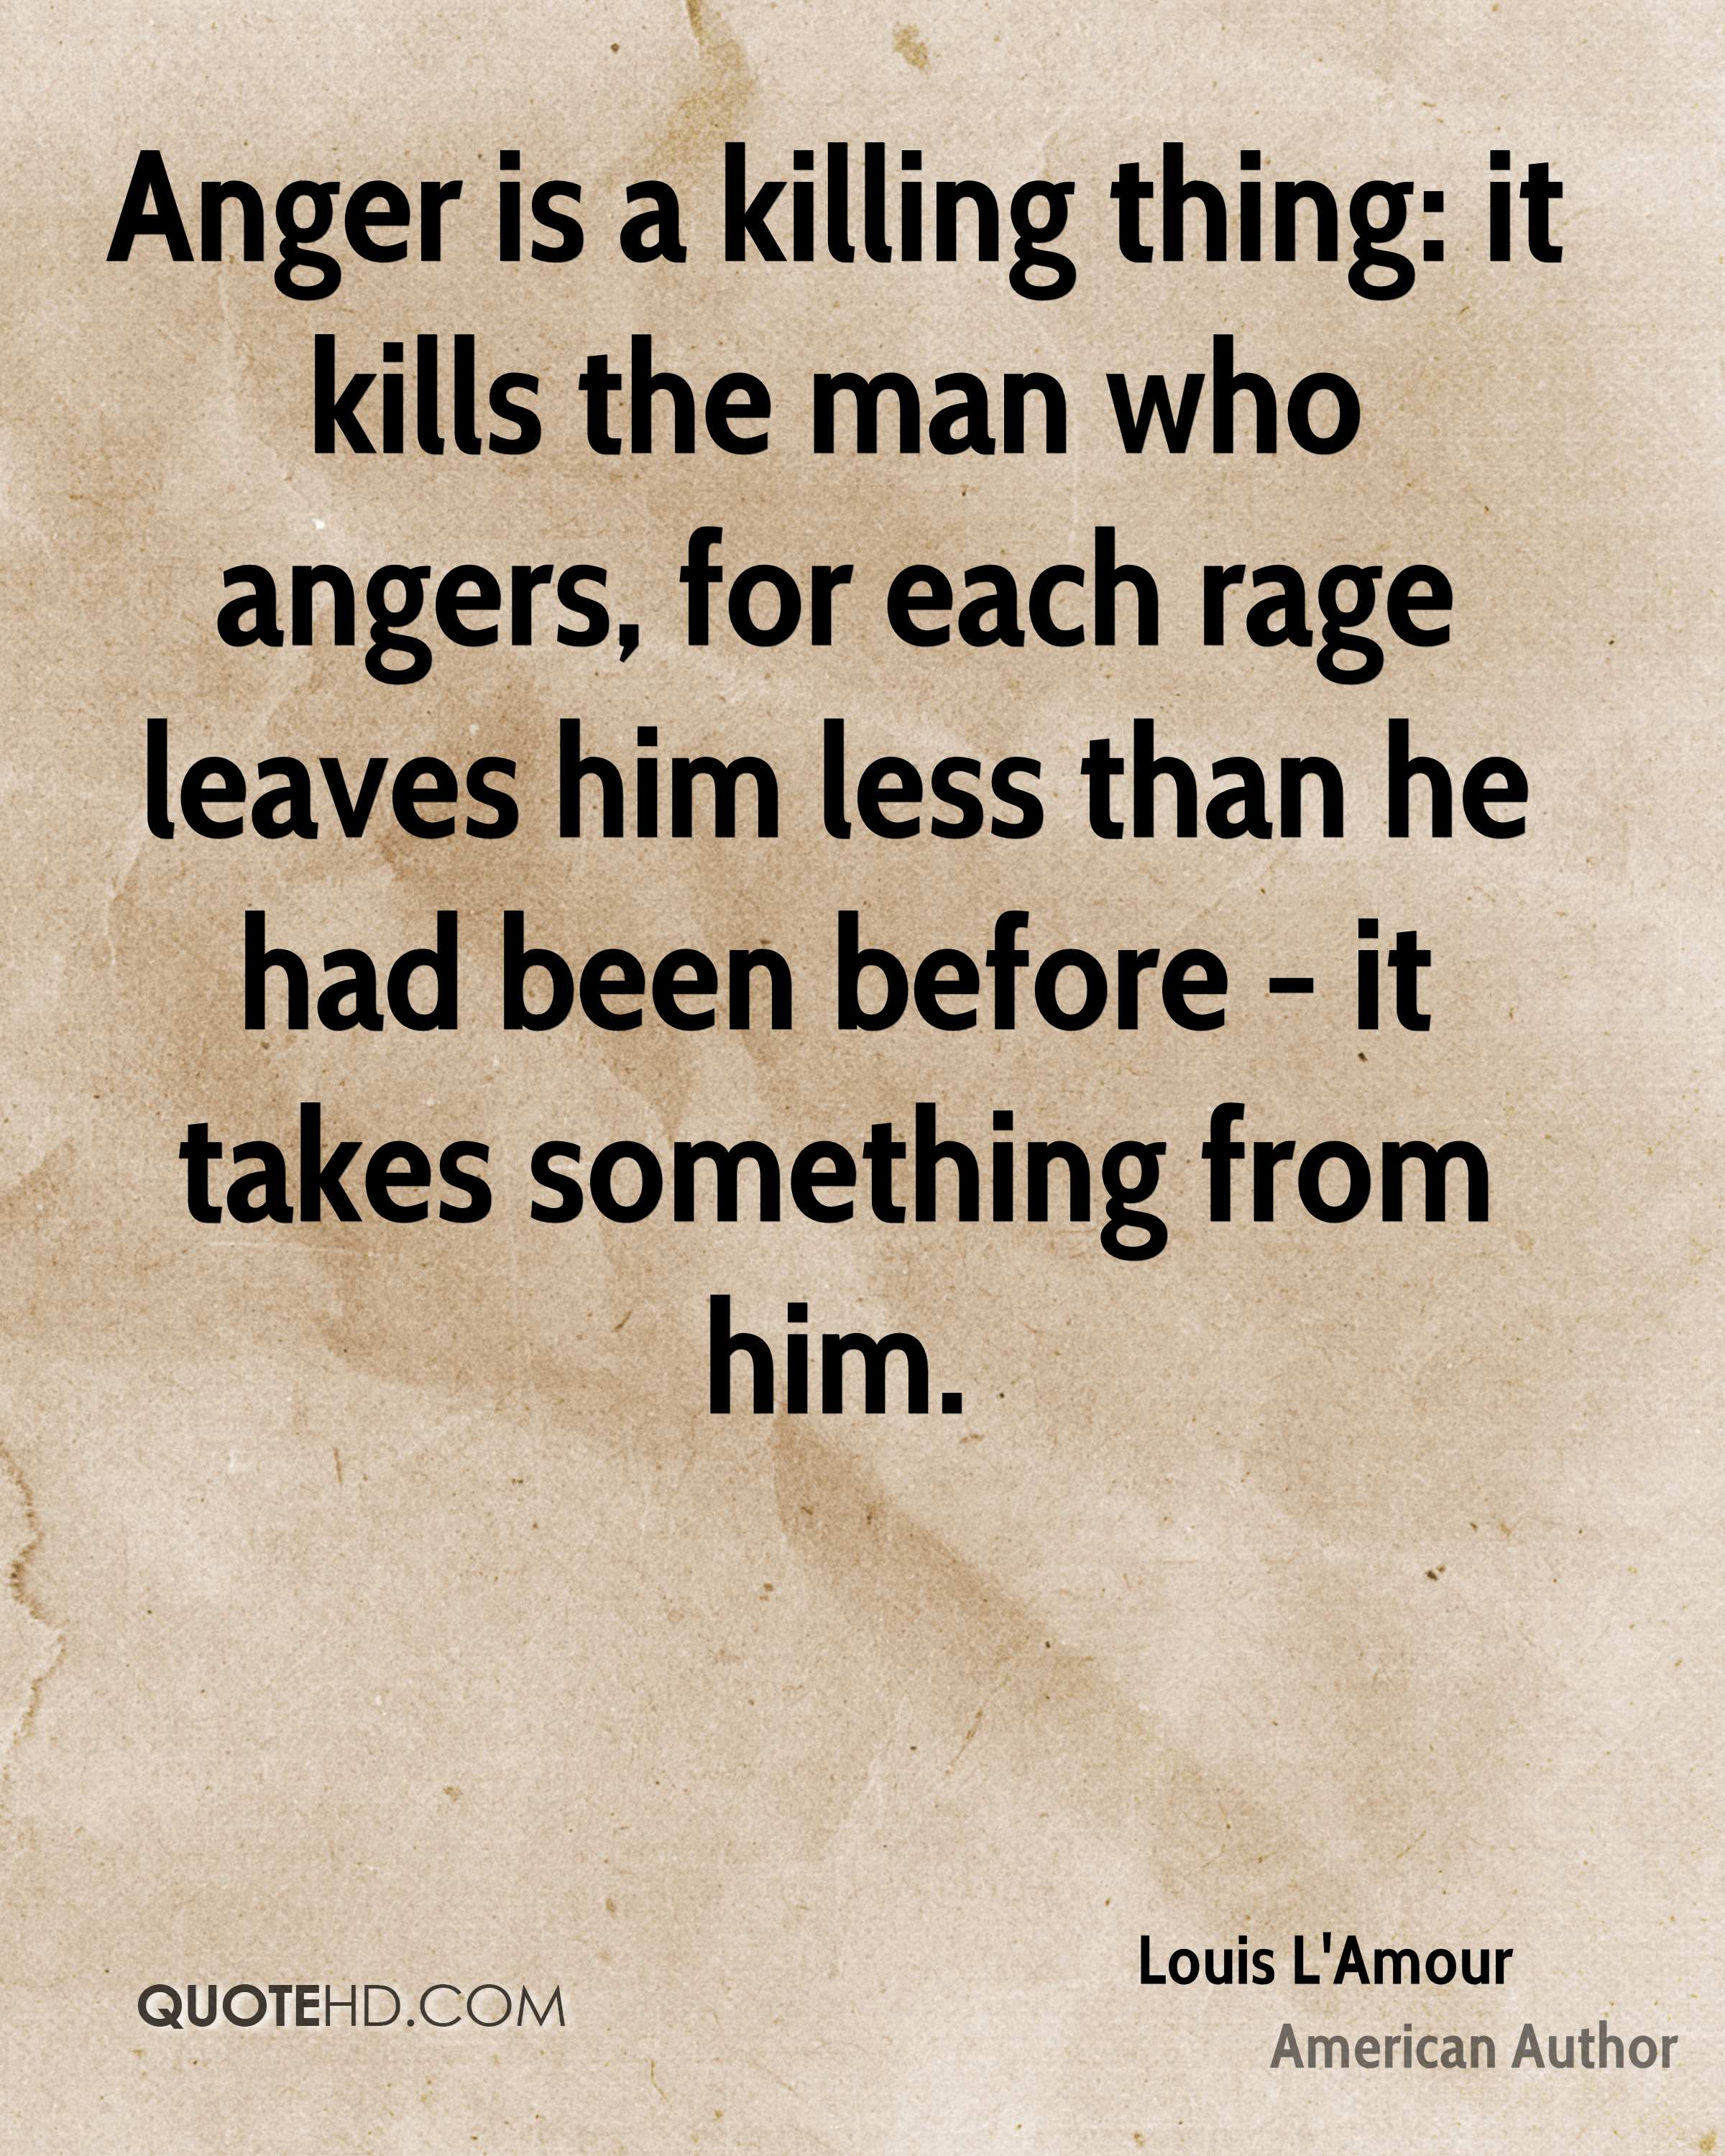 Louis L'Amour Anger Quotes